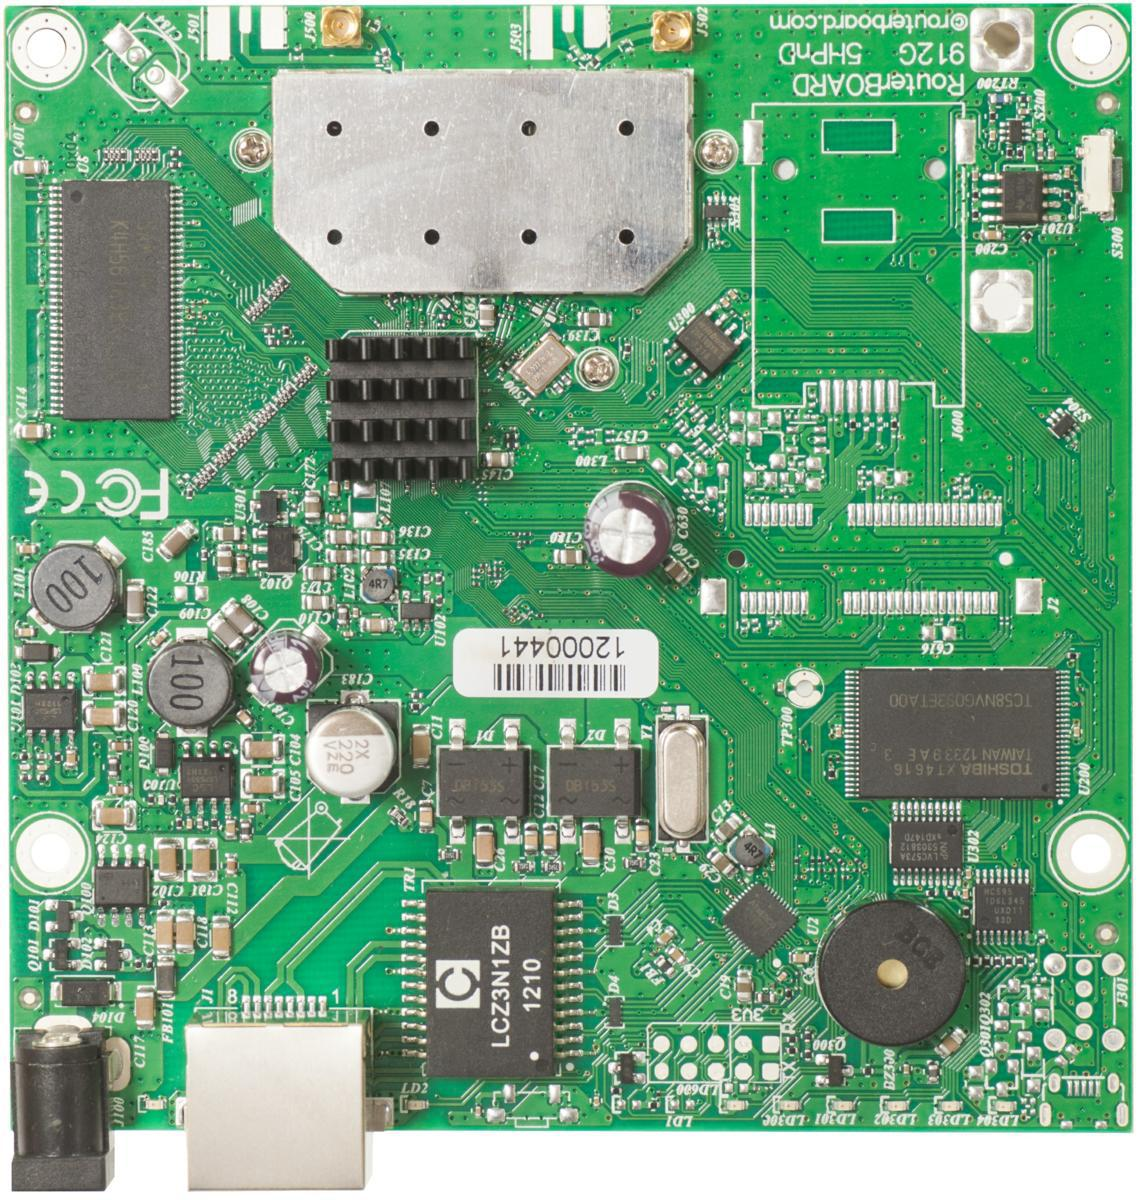 SICE Distributore Ufficiale  RouterBOARD RouterBOARD911G-5HPnD, 5GHz 802.11a/n 2xMMCX connectors 1ETHGiga | RB911G-5HPND